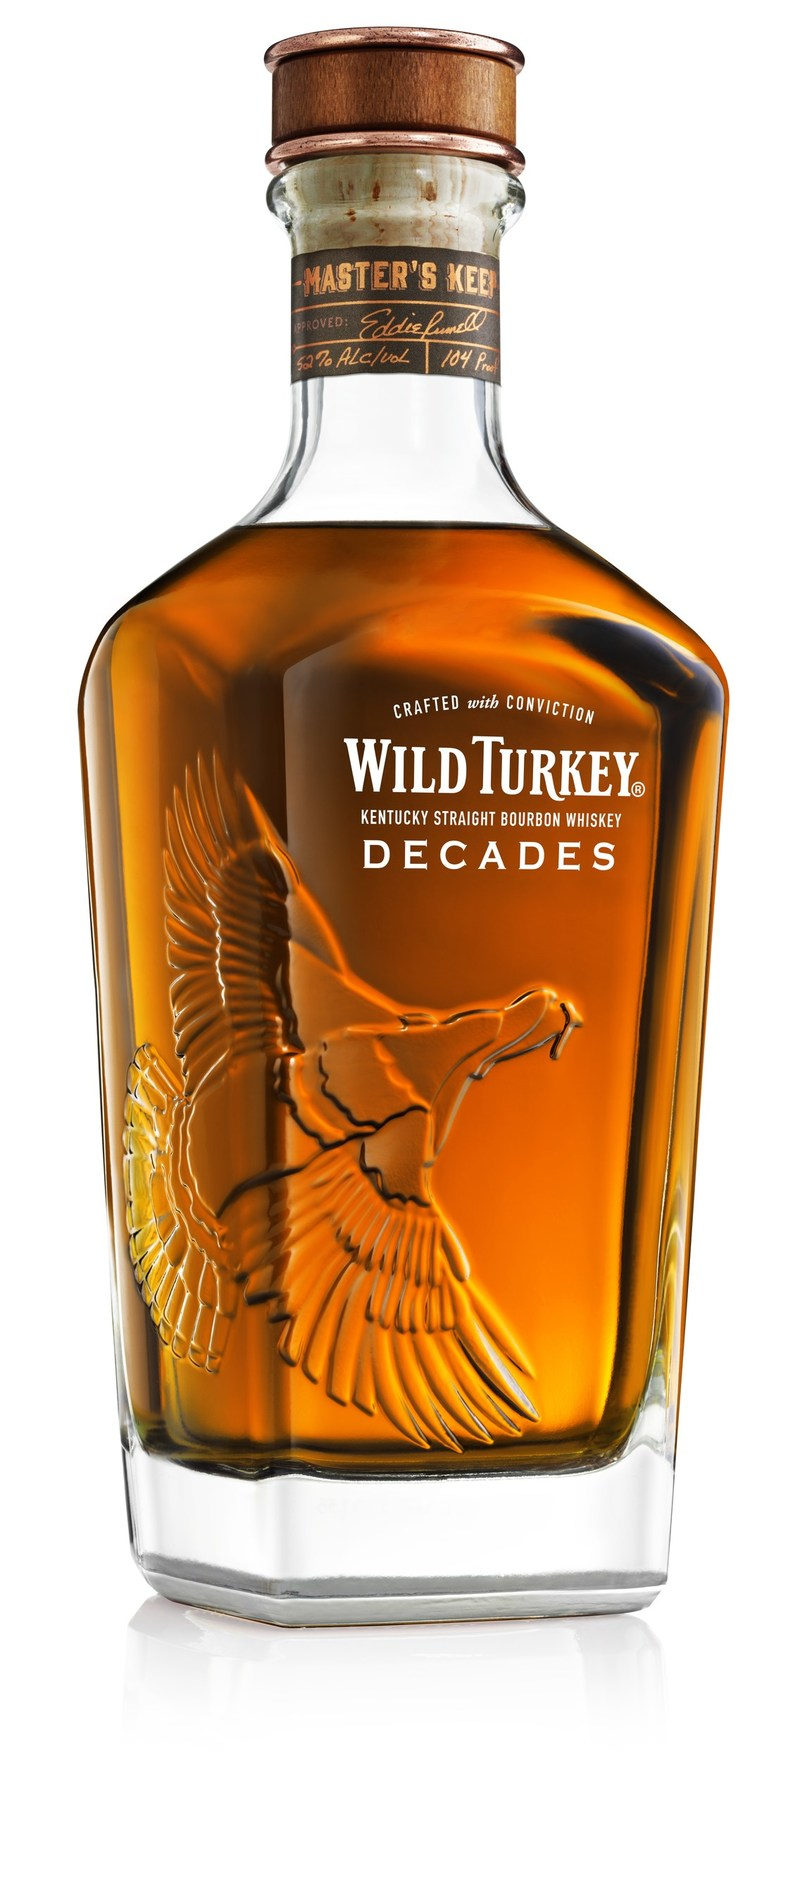 Celebrating the 35th anniversary of Master Distiller Eddie Russell, Wild Turkey(R) is releasing Master's Keep Decades, the second limited-edition Bourbon in the Master's Keep series.